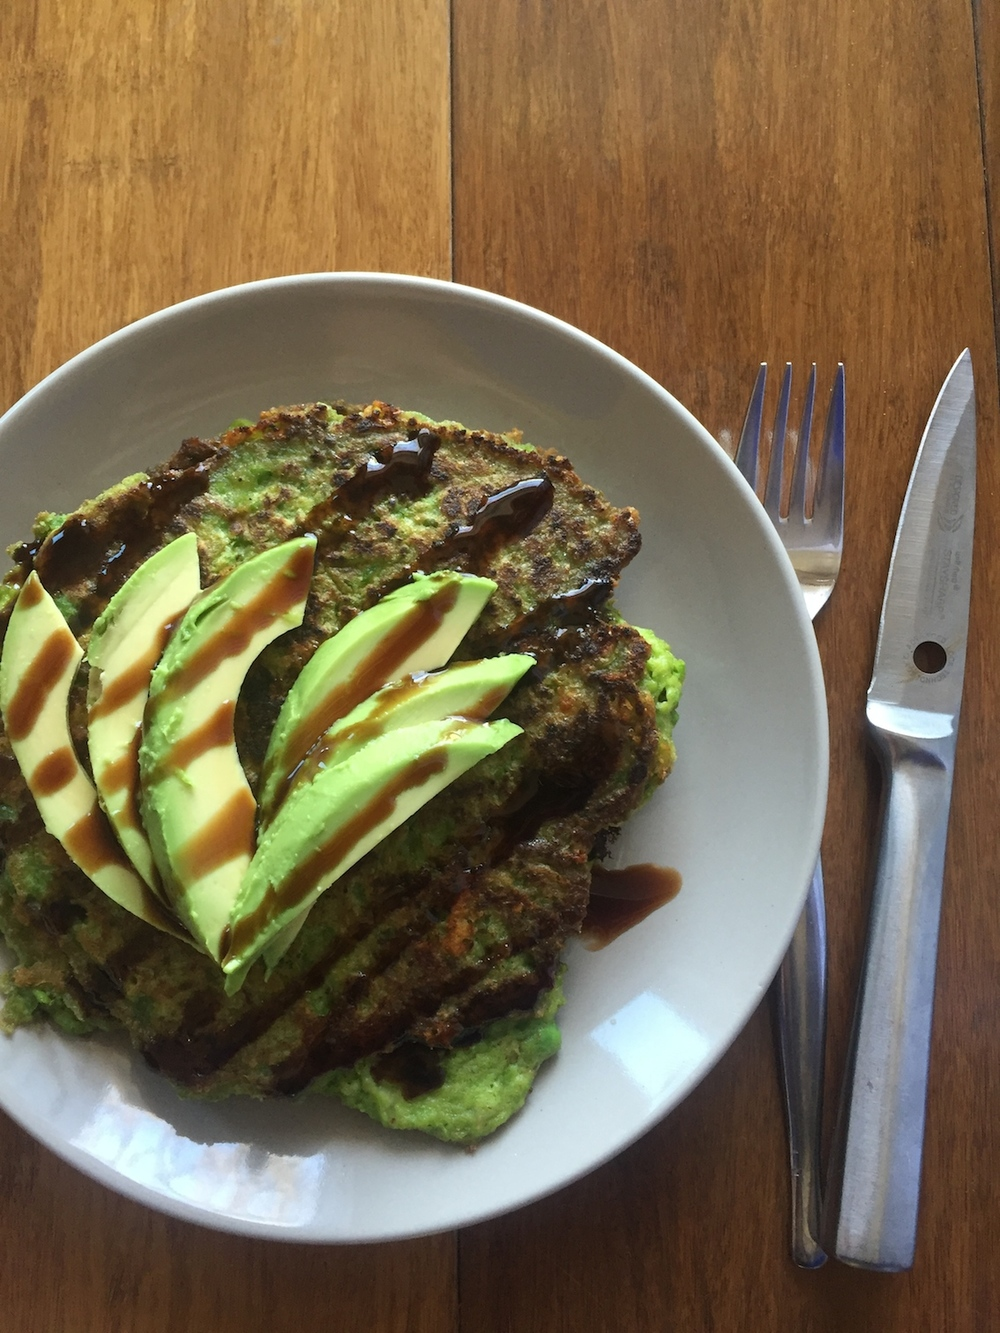 Delicious green pea pancakes